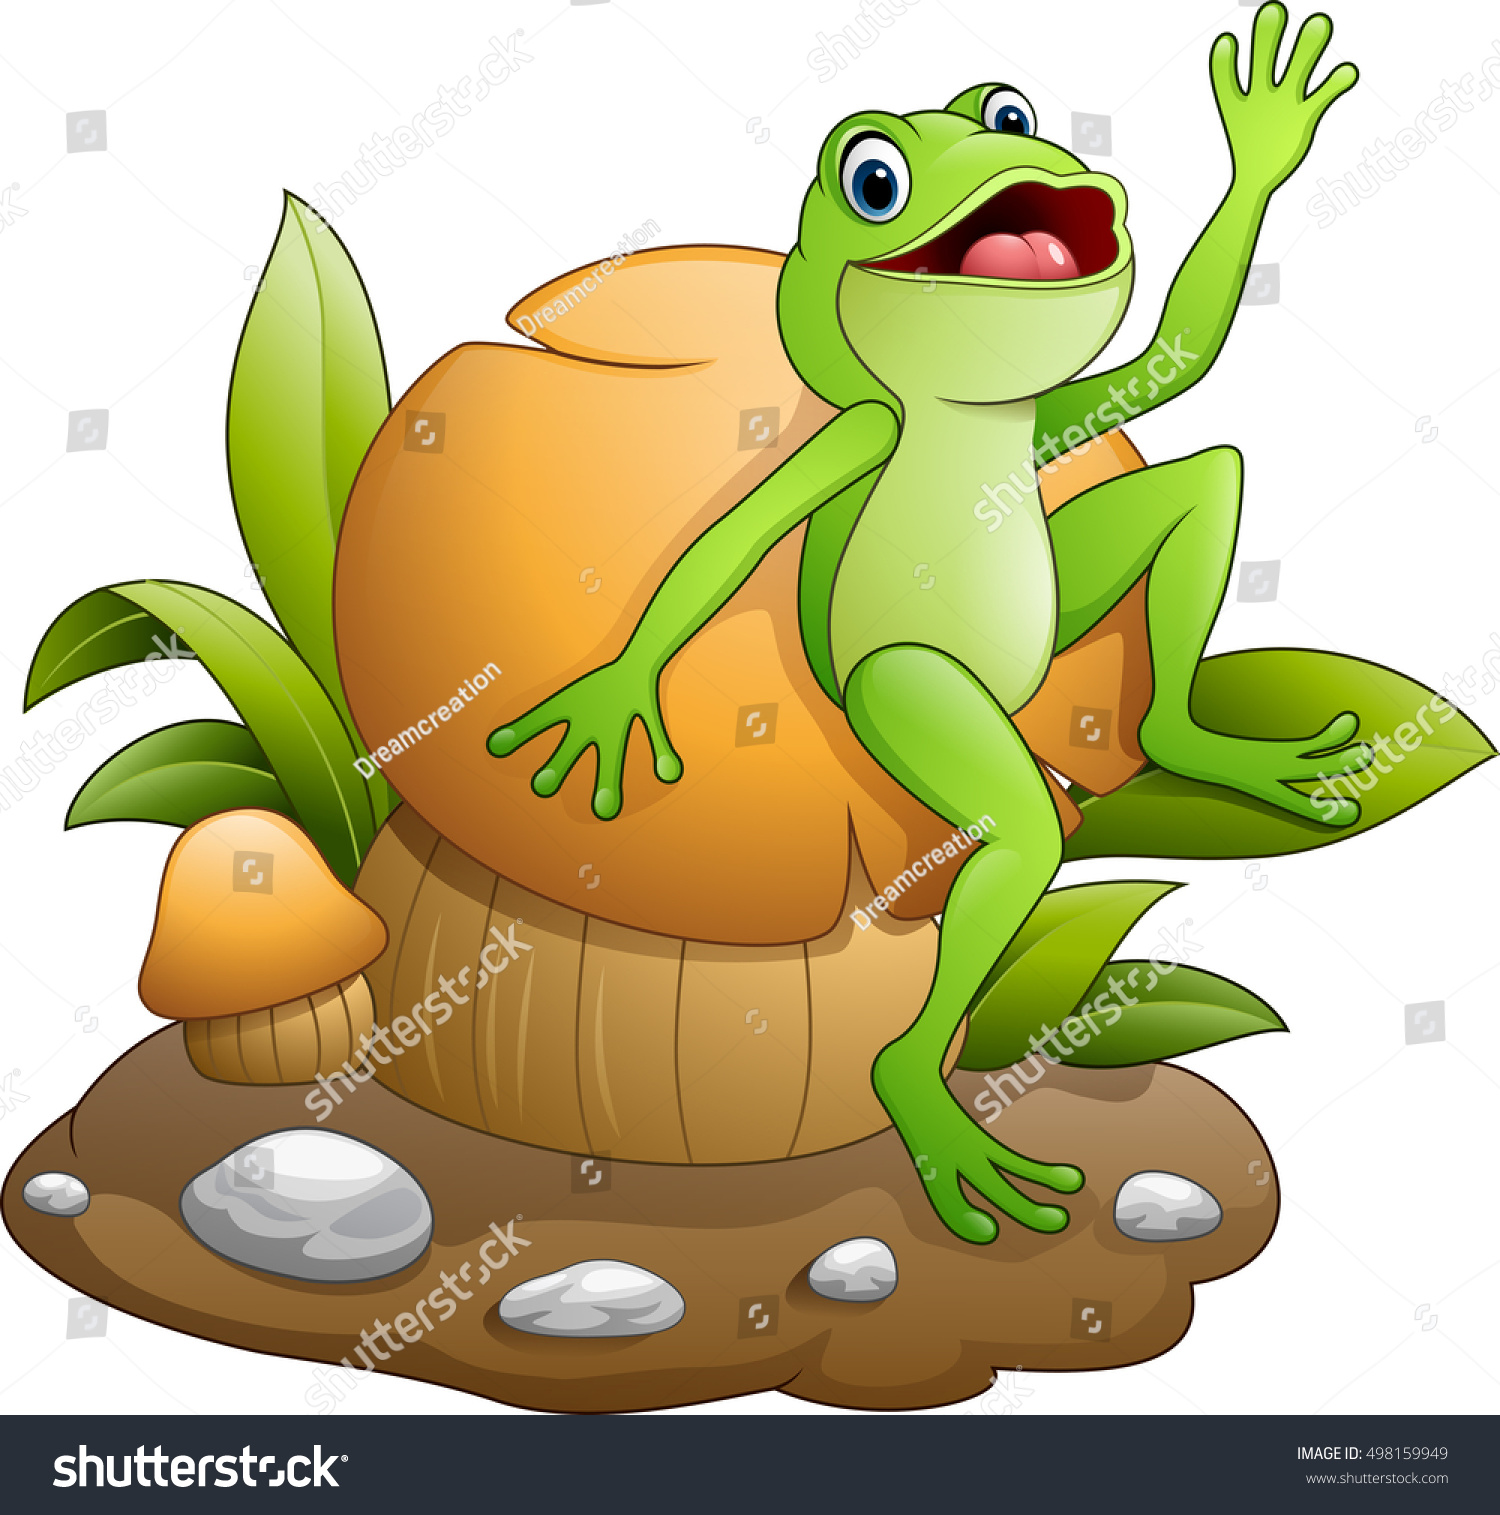 cute frog mushrooms stock illustration 498159949 shutterstock